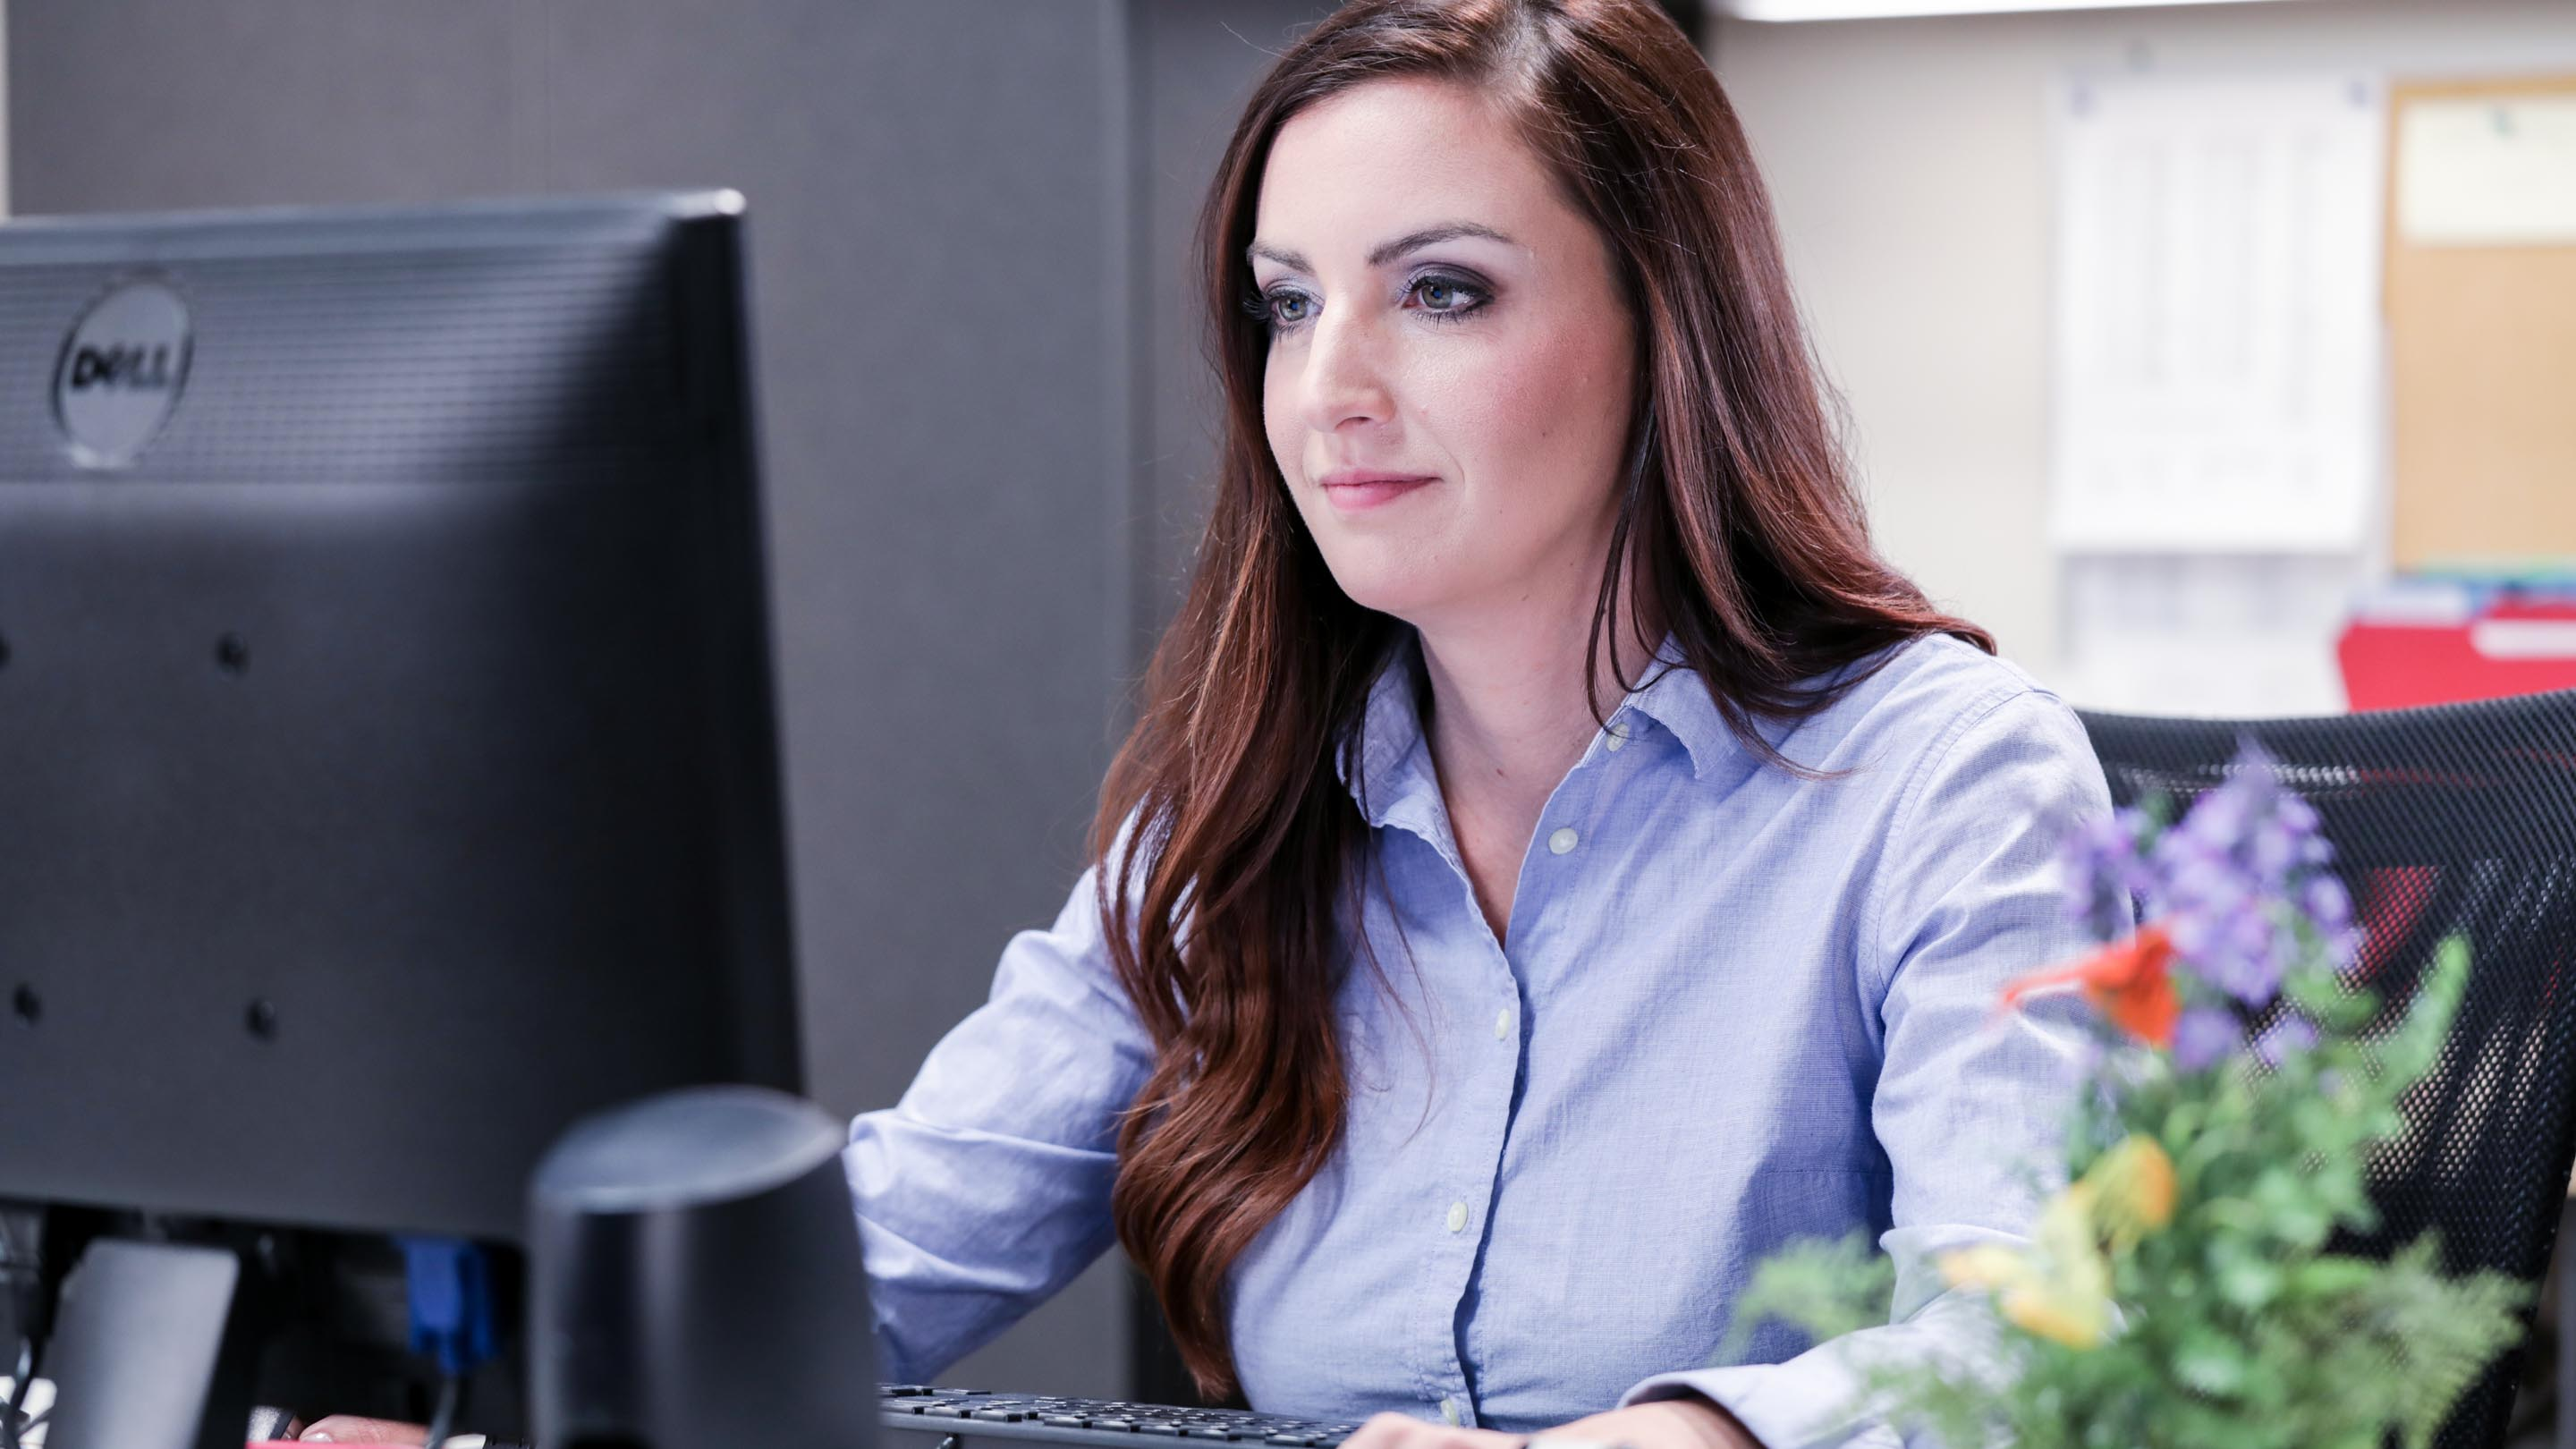 Customer support woman at computer